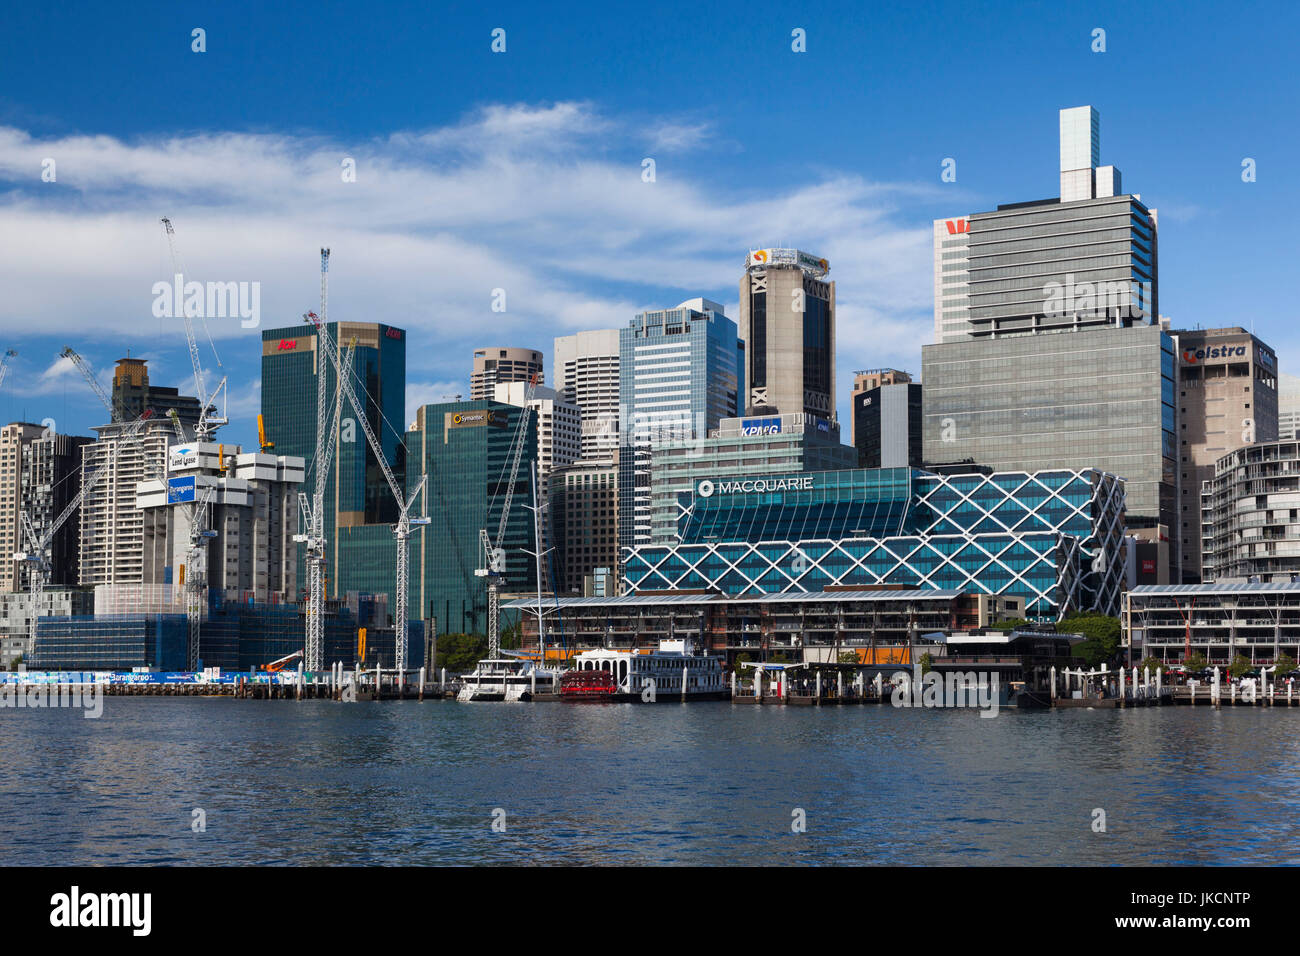 Australia, New South Wales, NSW, Sydney, Darling Harbour - Stock Image